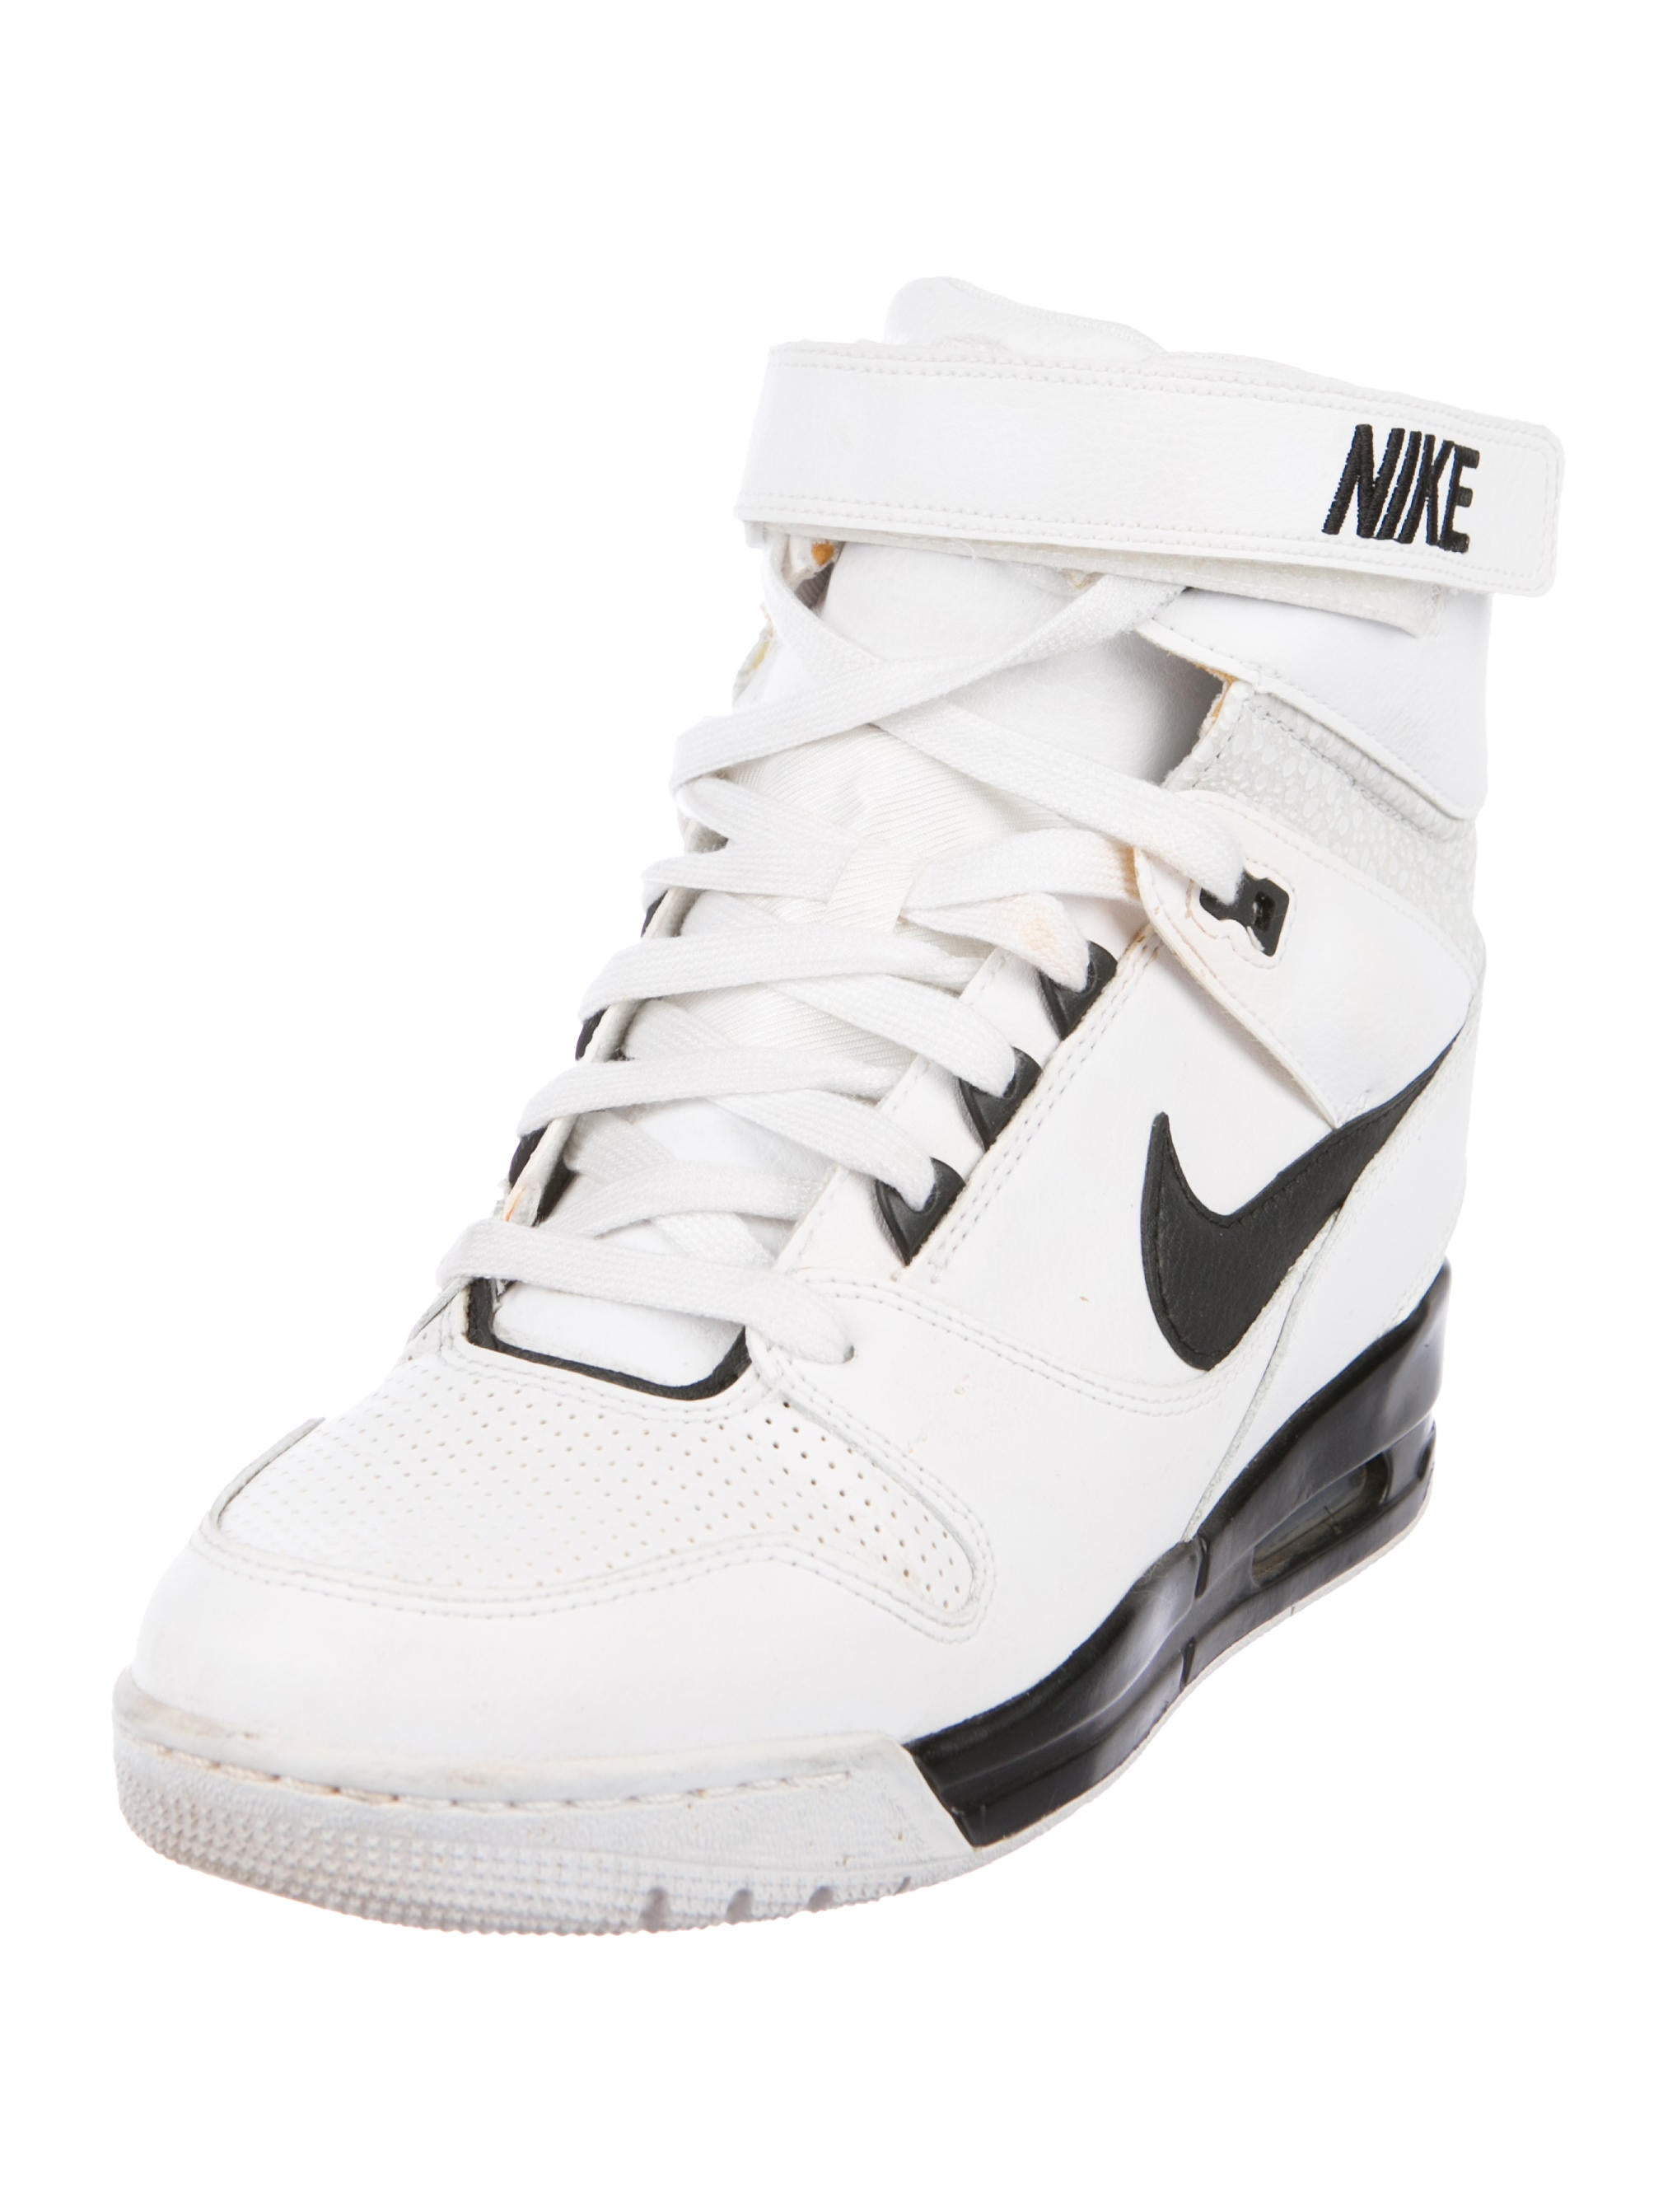 Nike Air Revolution Sky High Wedge Sneakers Shoes